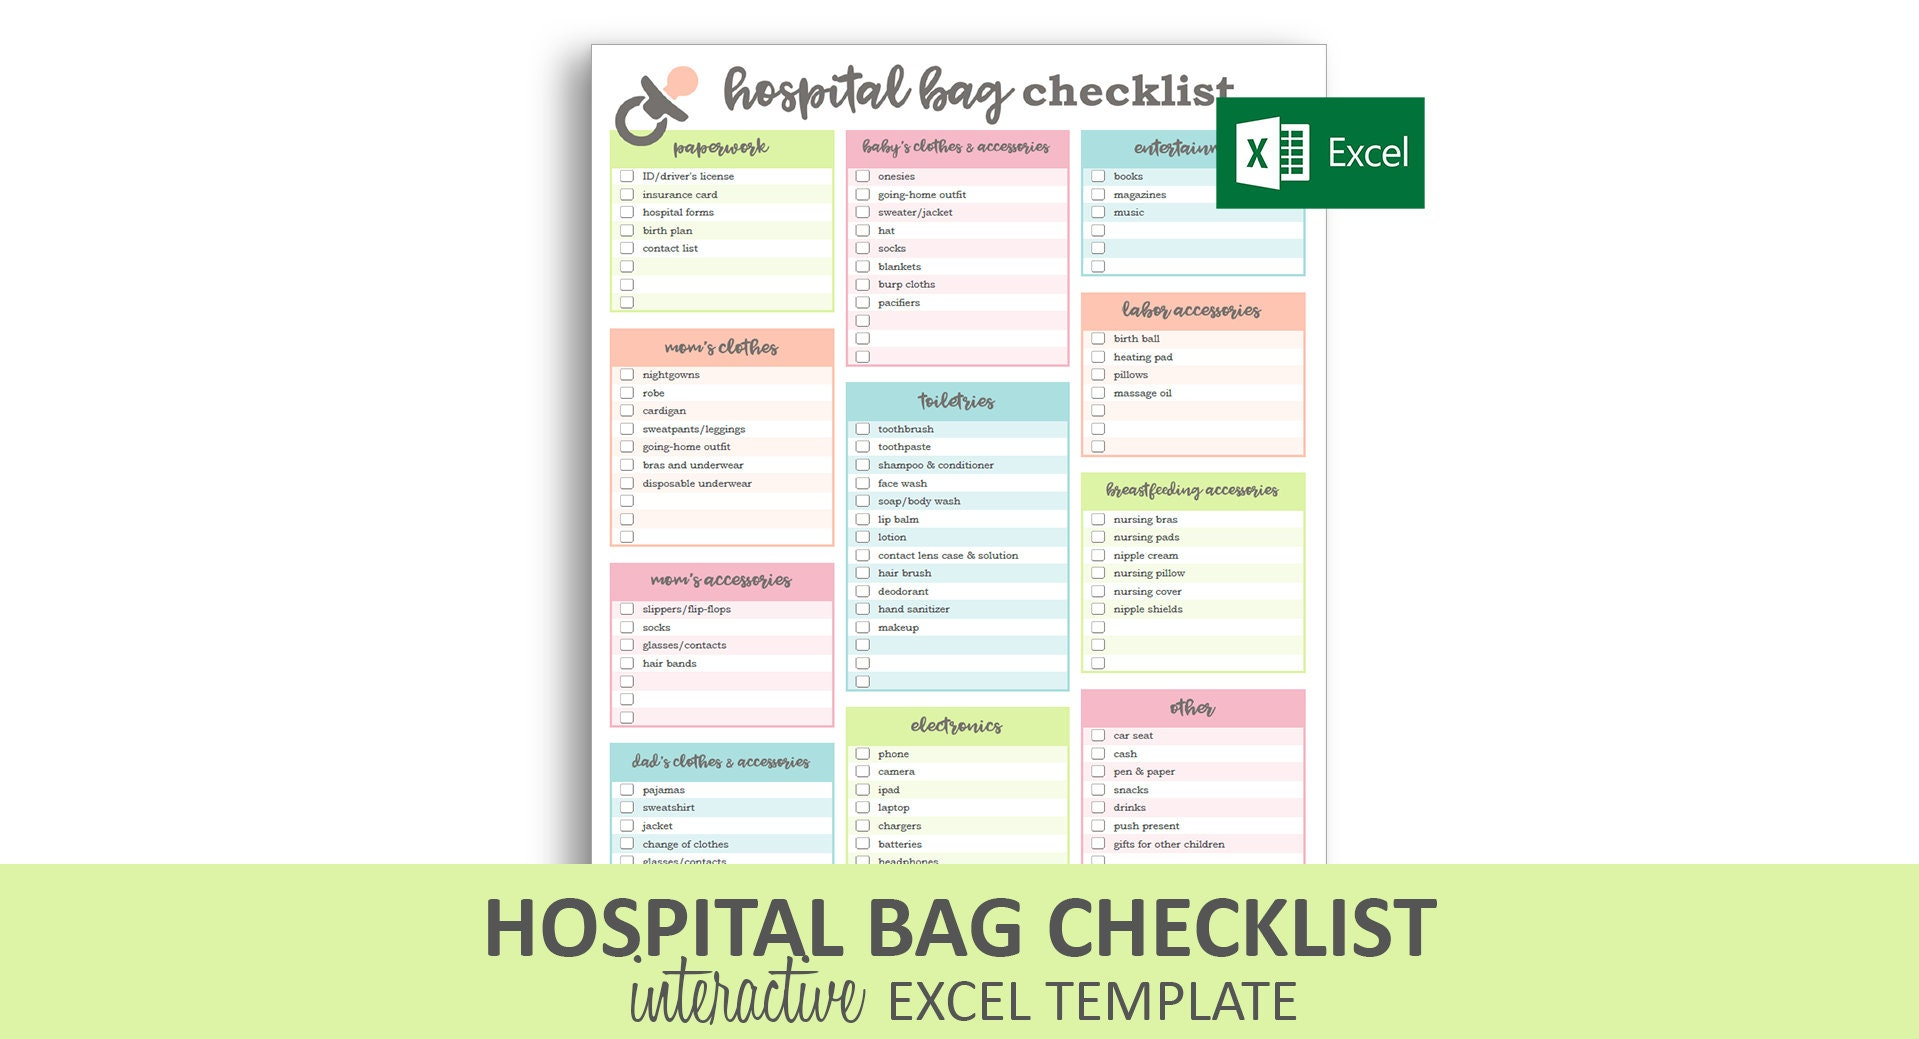 photo about Printable Hospital Bag Checklist named Healthcare facility Bag Record - Excel Template Editable Checkable Printable Contemporary Youngster Packing Record Quick Electronic Down load